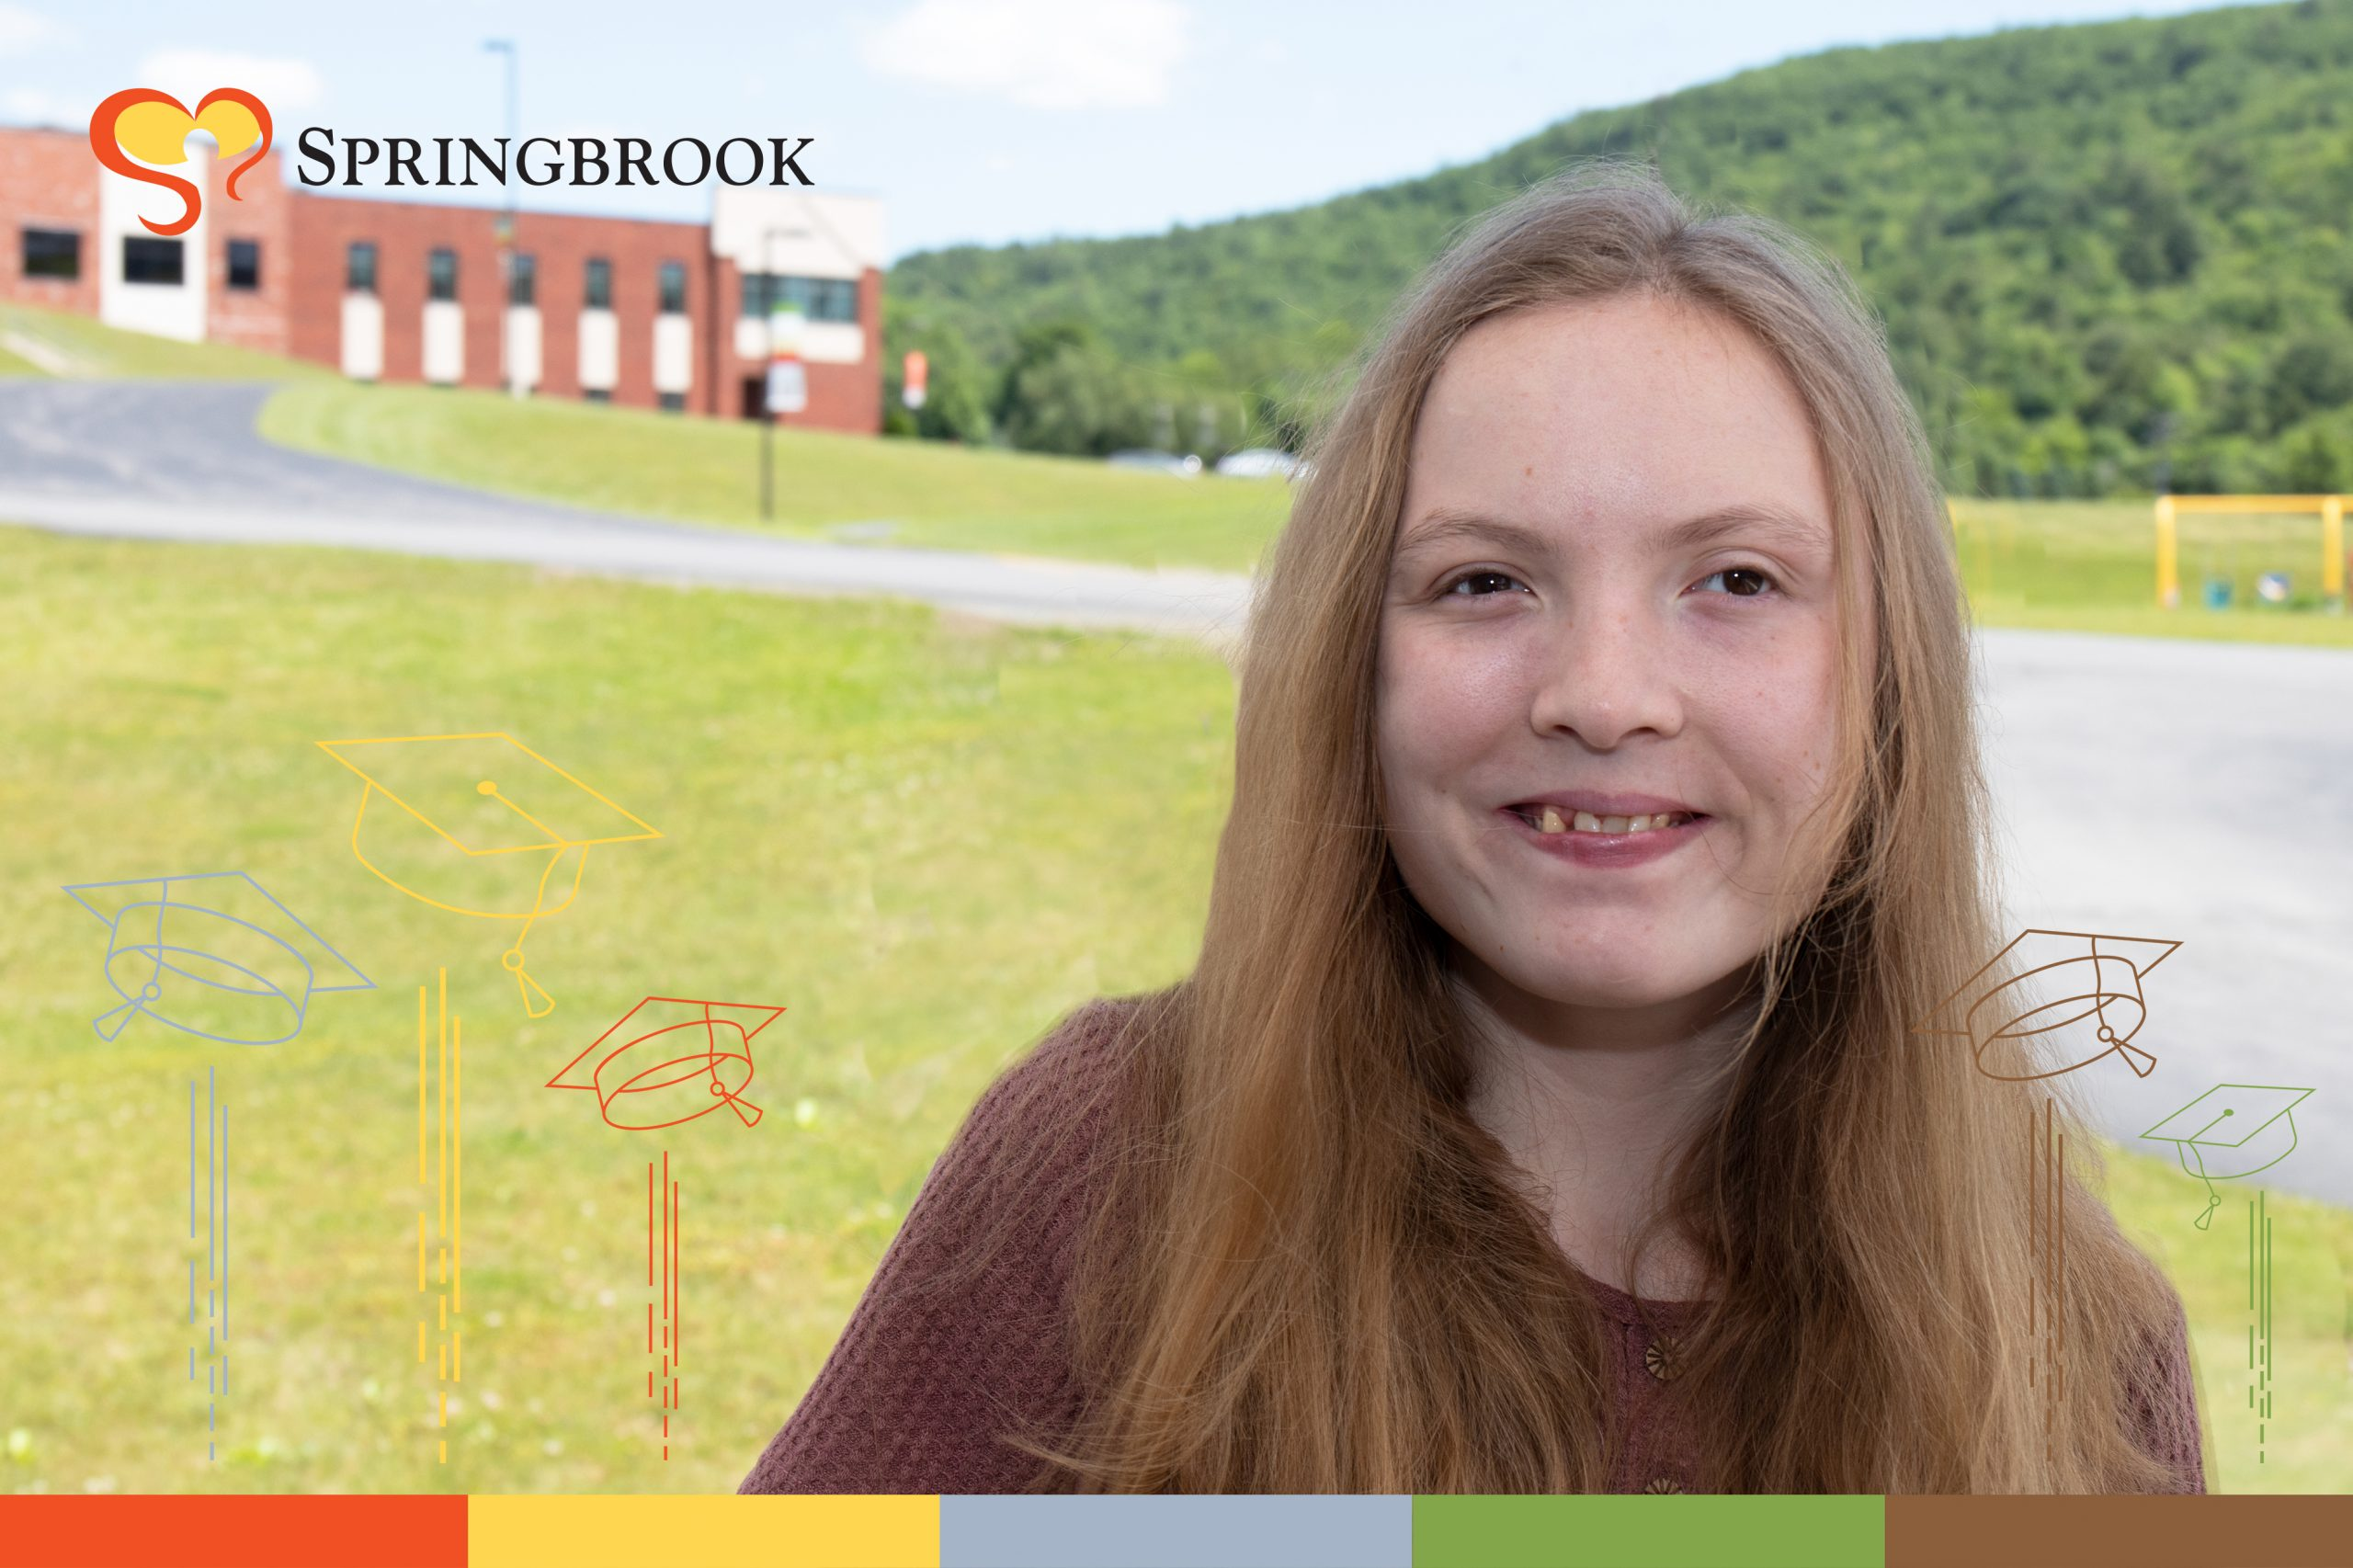 Miller Stephanie EDIT scaled - The School at Springbrook - Class of 2021